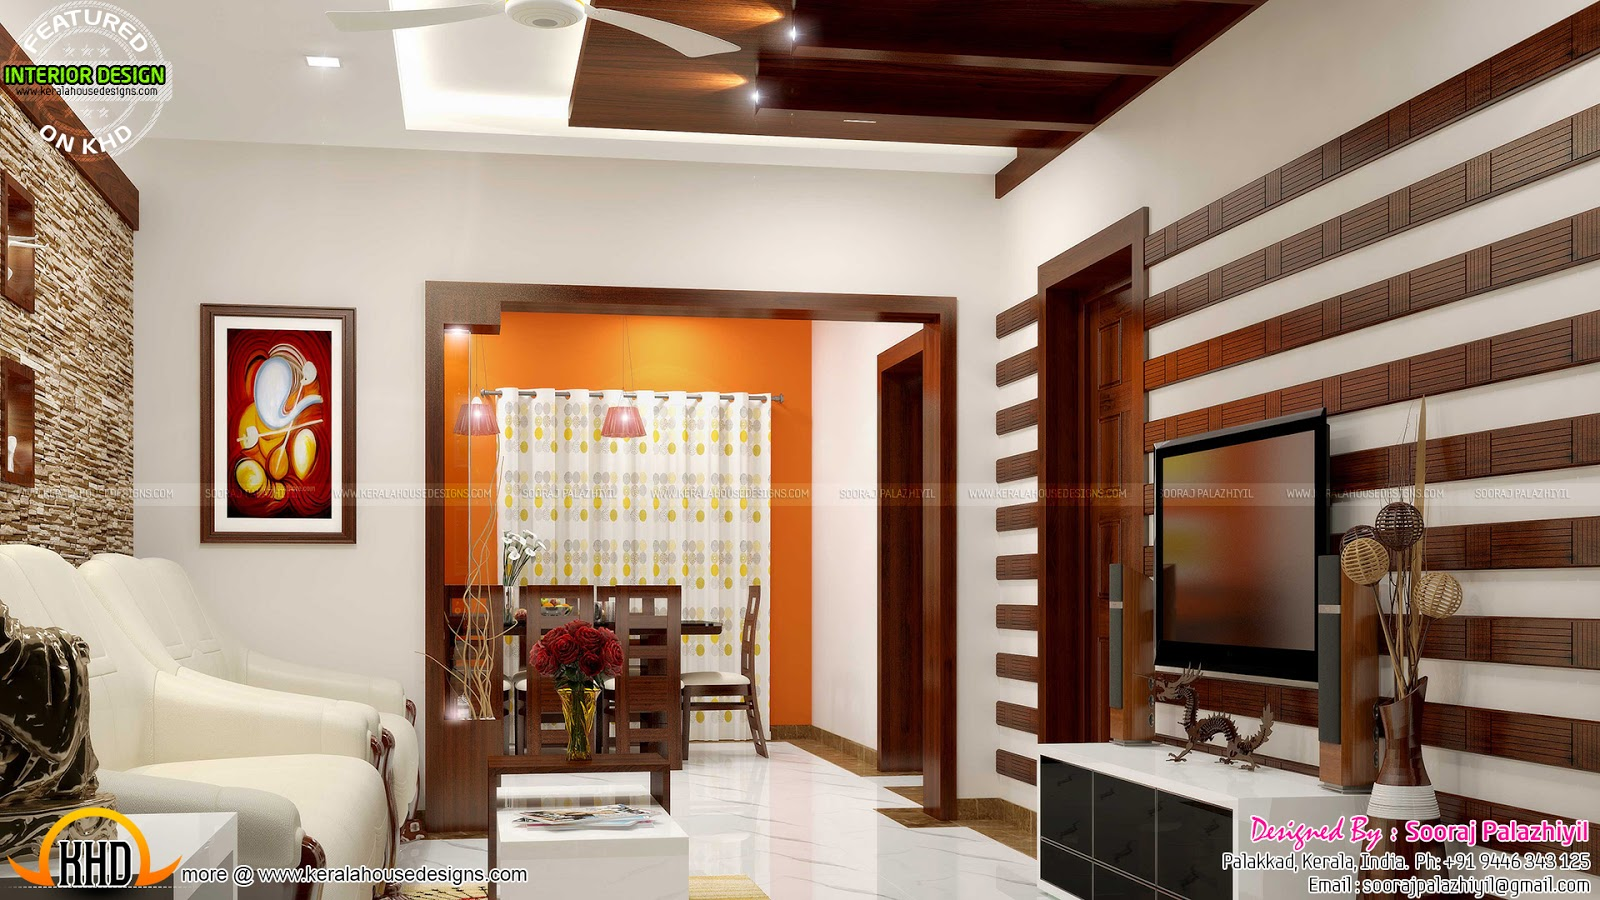 Interior design for apartments in kerala simple for Simple interior design ideas for indian homes